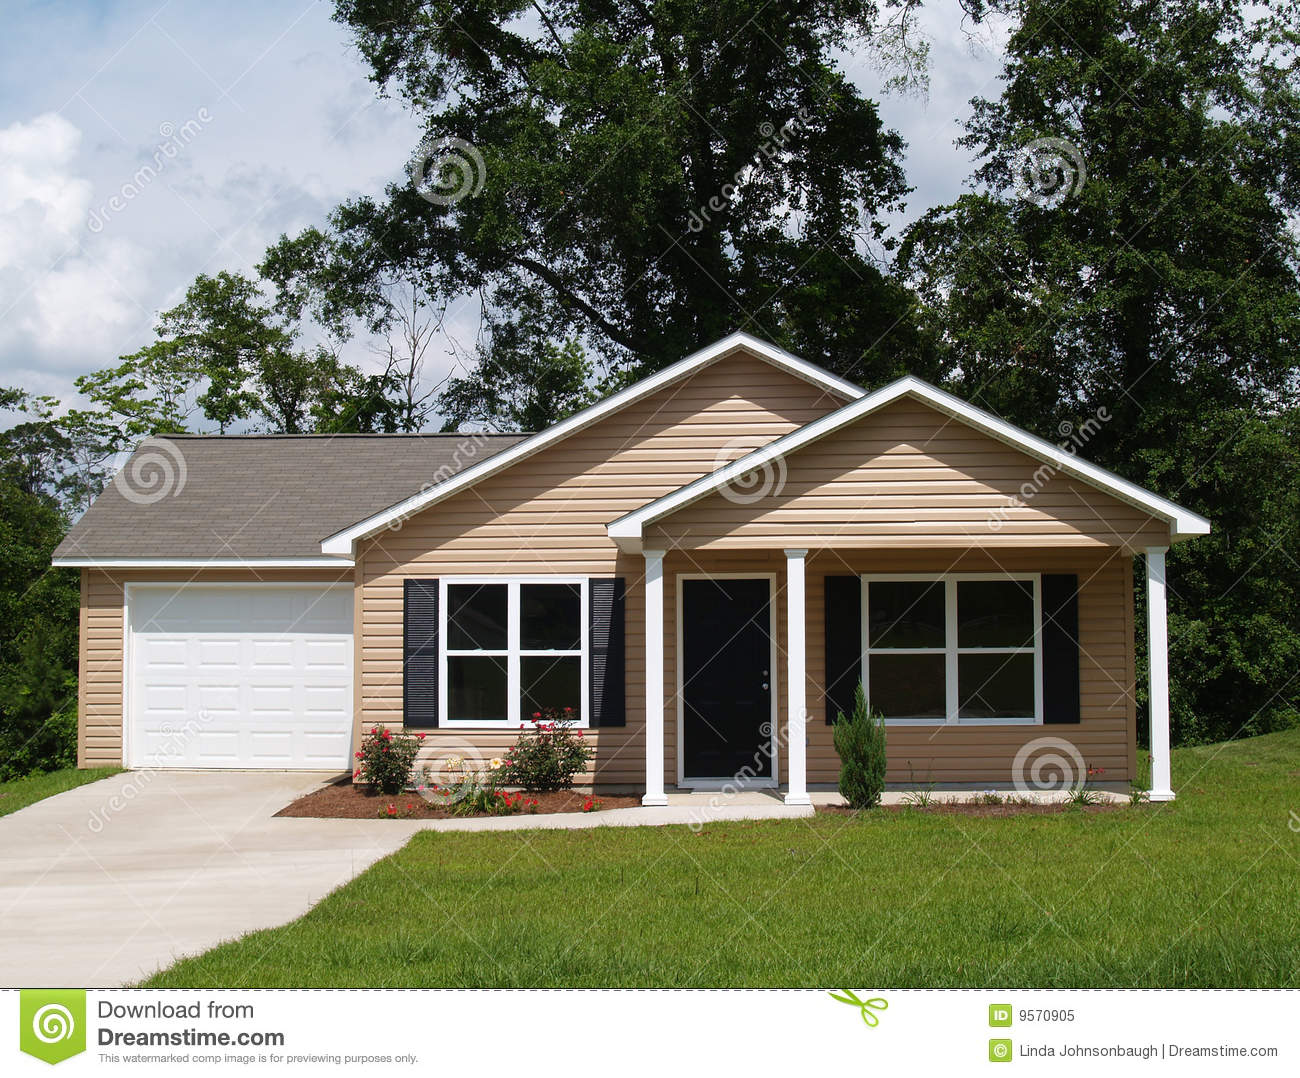 Small residential home stock image image of dream for Vinyl siding house plans